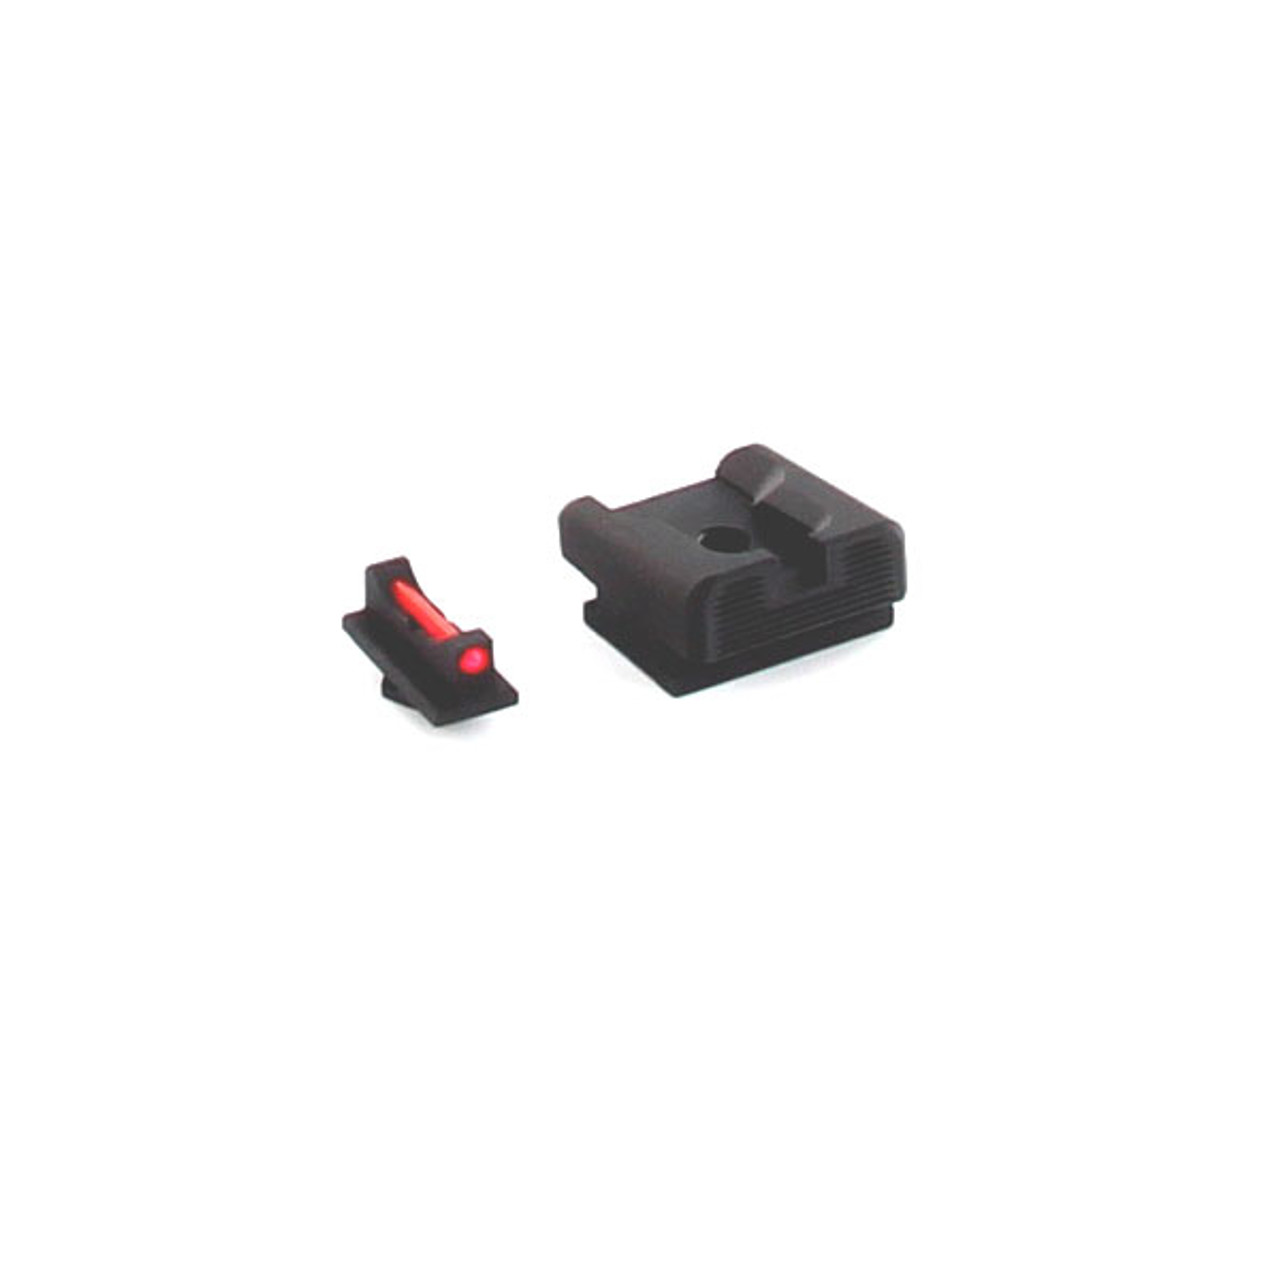 Dawson Precision Walther PPS/PPX/PPQ 45 Fixed Charger Sight Set - Black  Rear & Fiber Optic Front